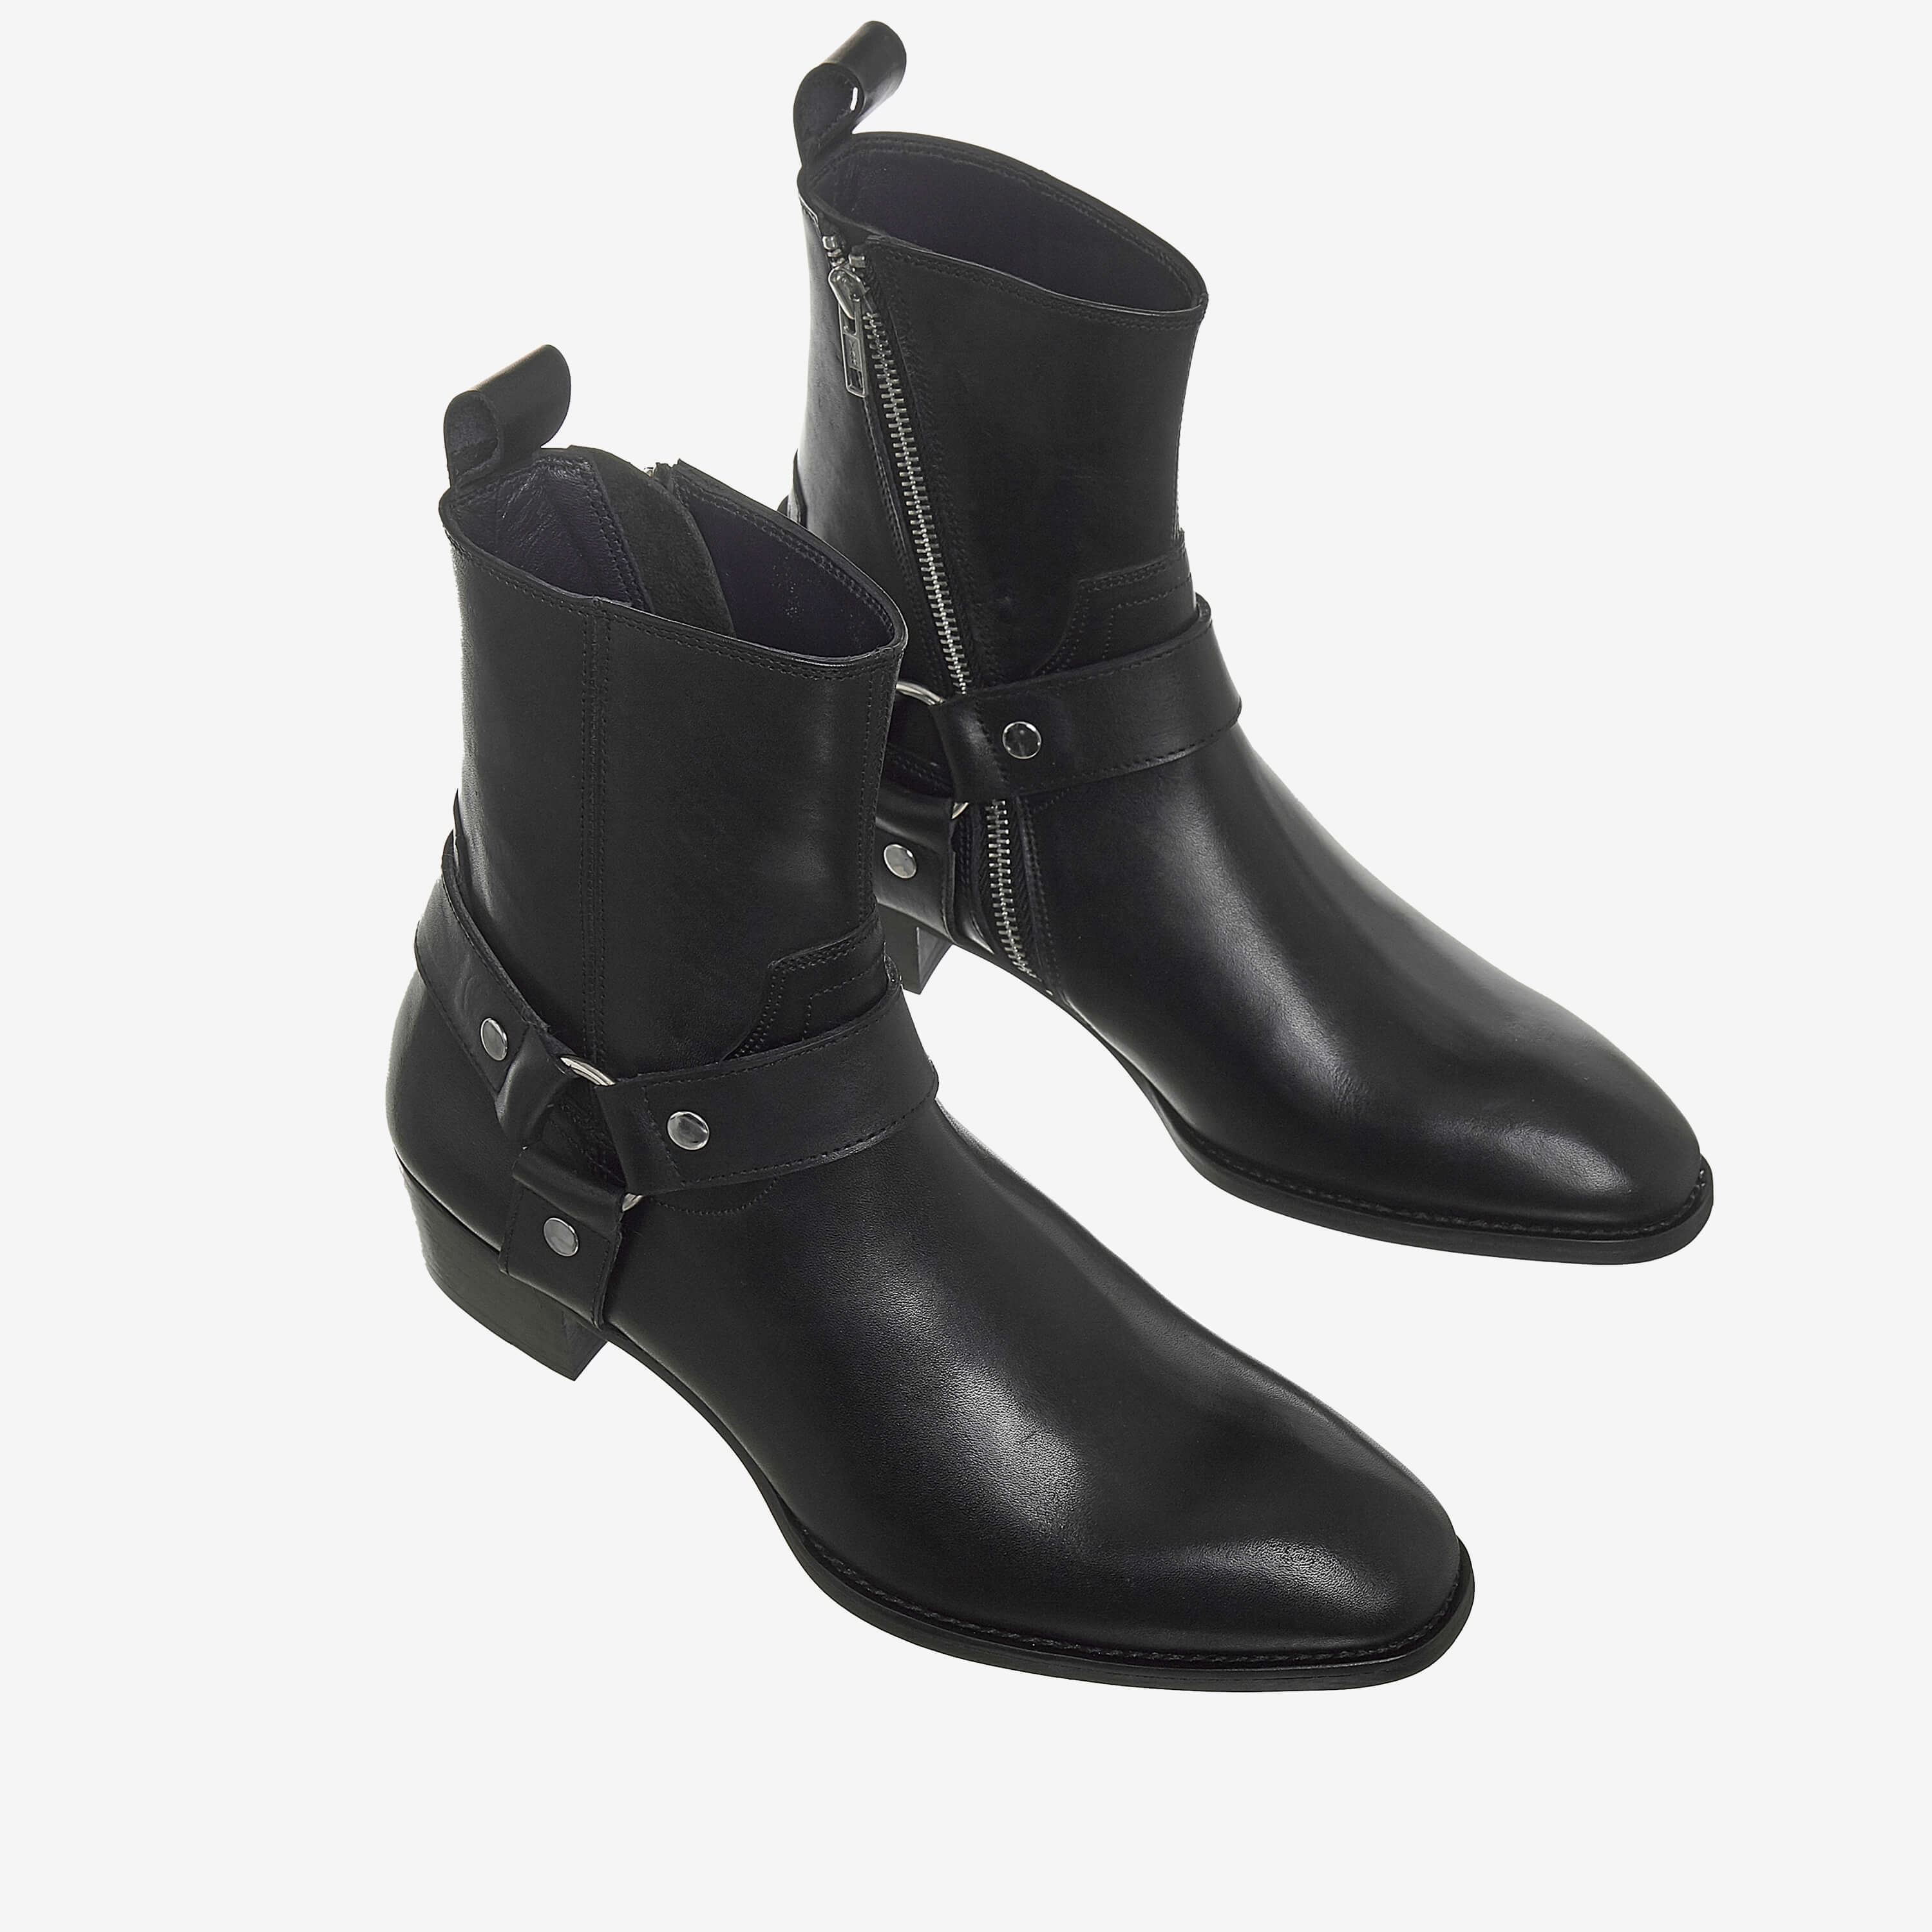 Leather Harness Boots In Black Leather Harness Boots In Black SS2020 3